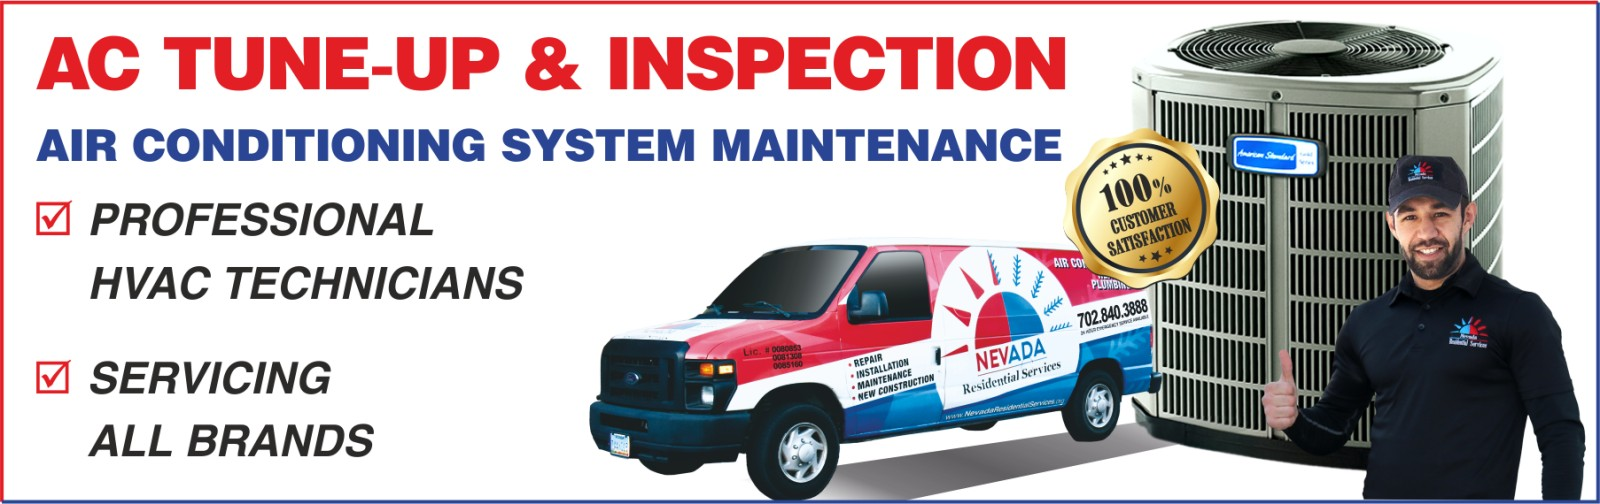 AC Tune Up & Inspection